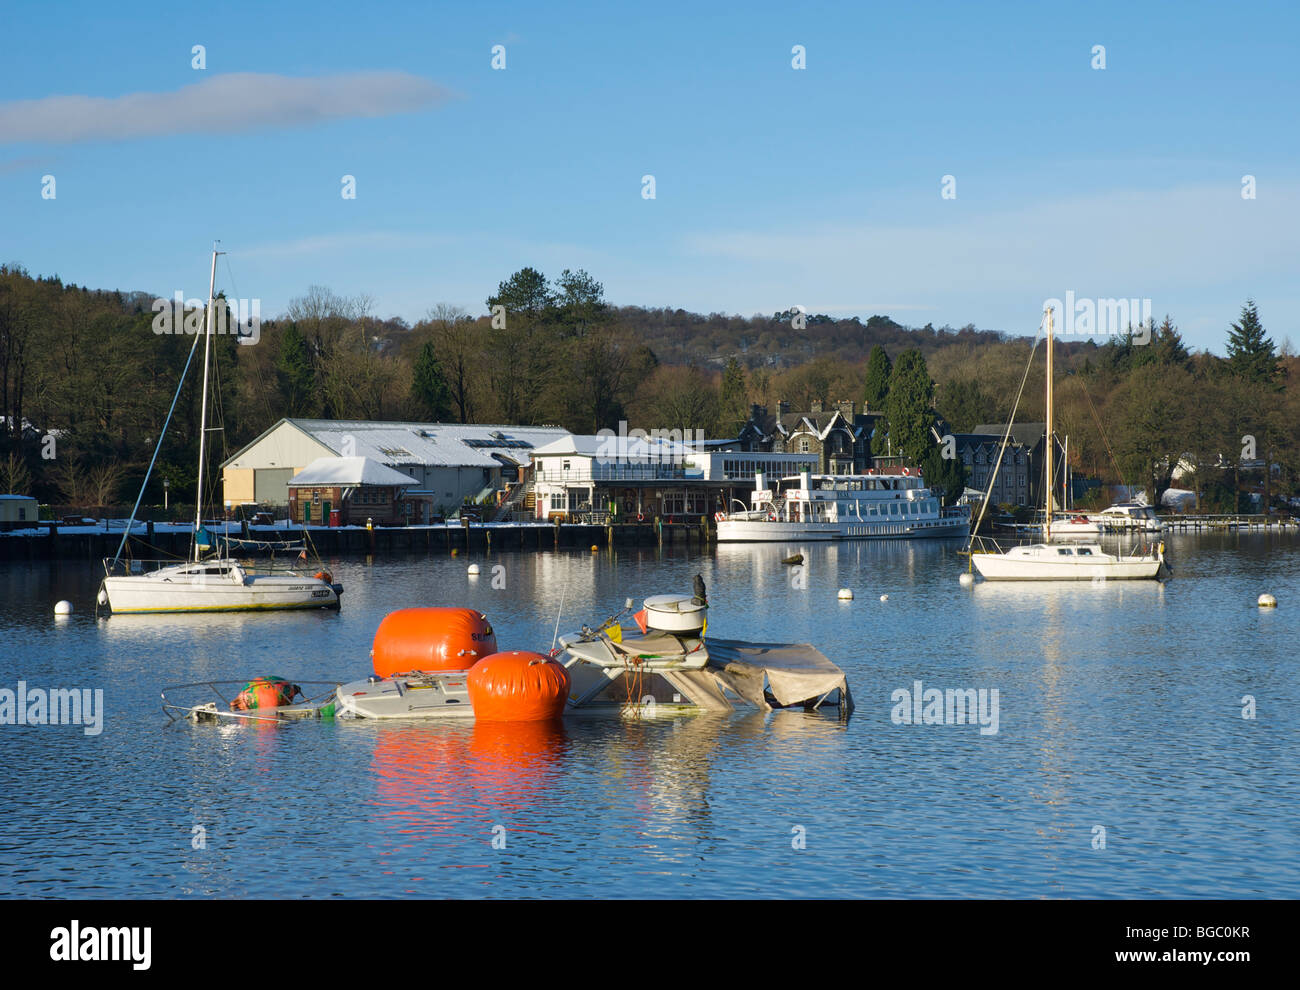 Flotation devices attached to half-sunk boat, Lakeside, Lake Windermere, Lake District National Park, Cumbria, England - Stock Image